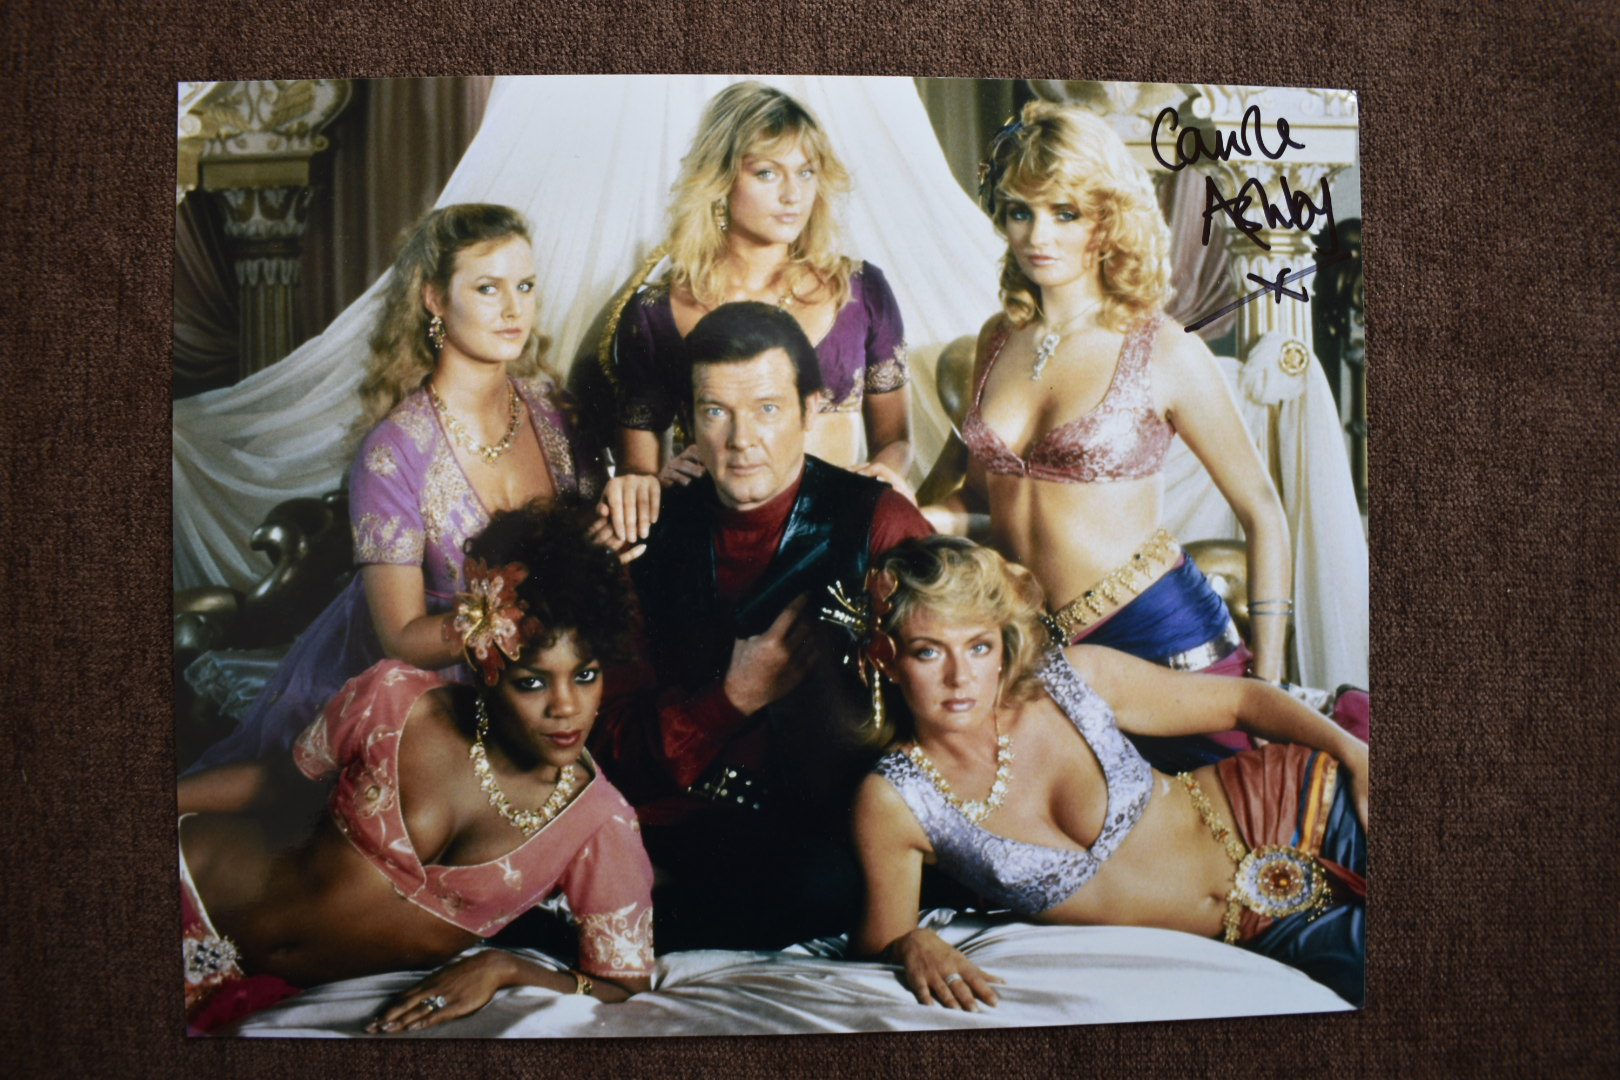 signed bond girl photo